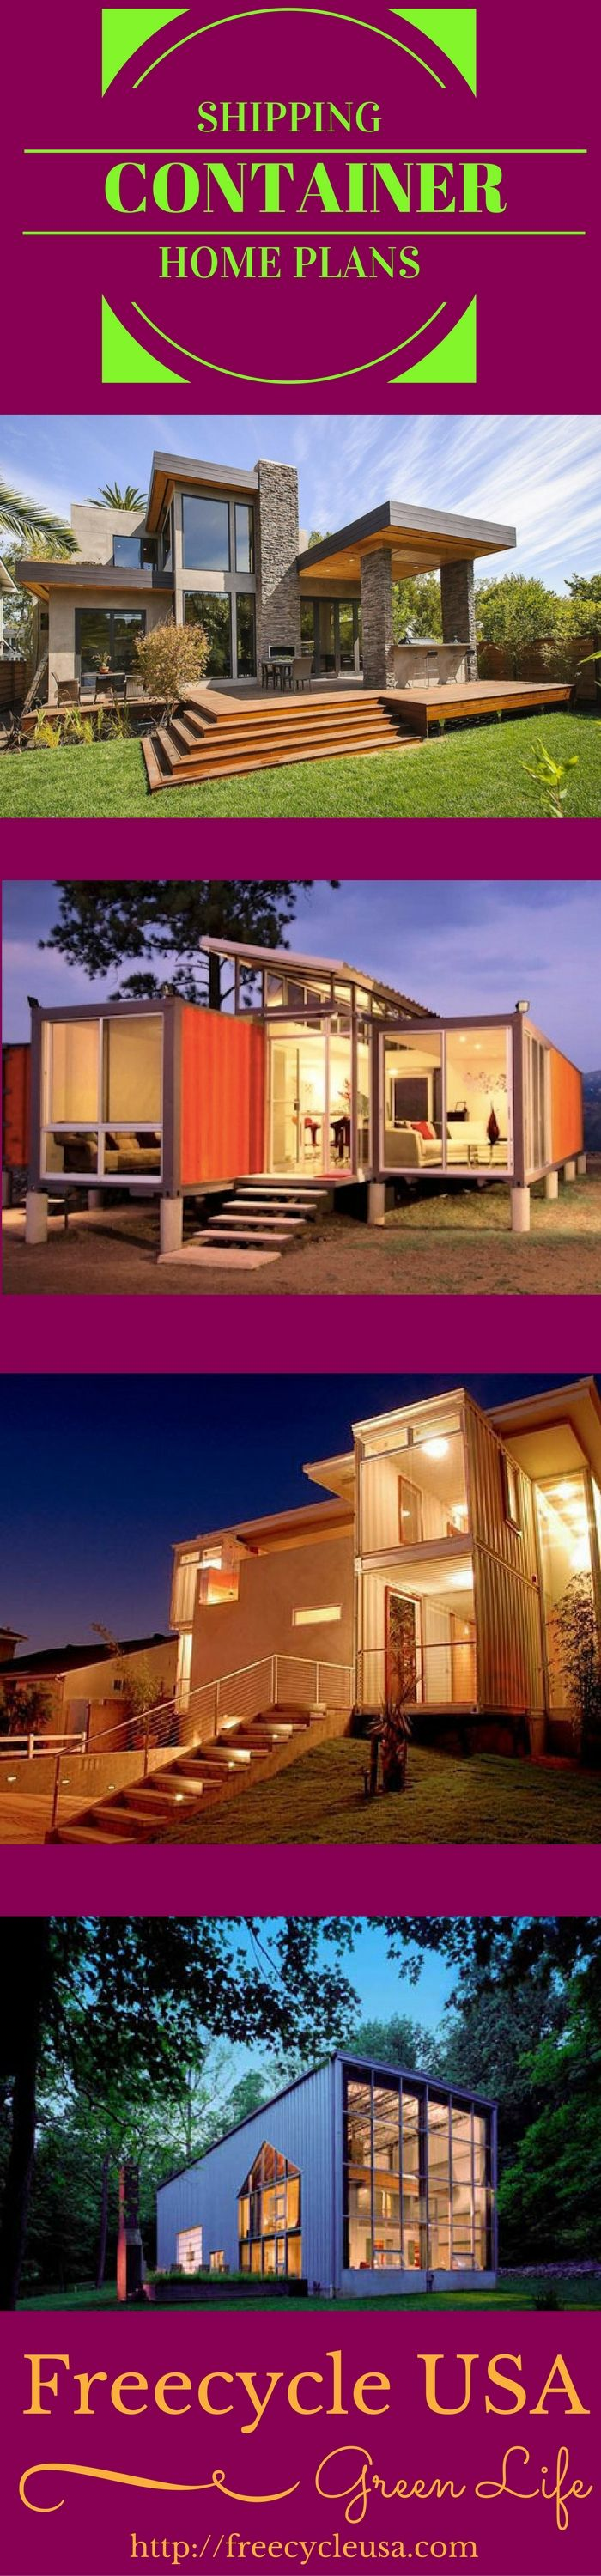 Best Kitchen Gallery: How To Build Amazing Shipping Container Homes Pennies House And of Container Homes Built In Usa on rachelxblog.com